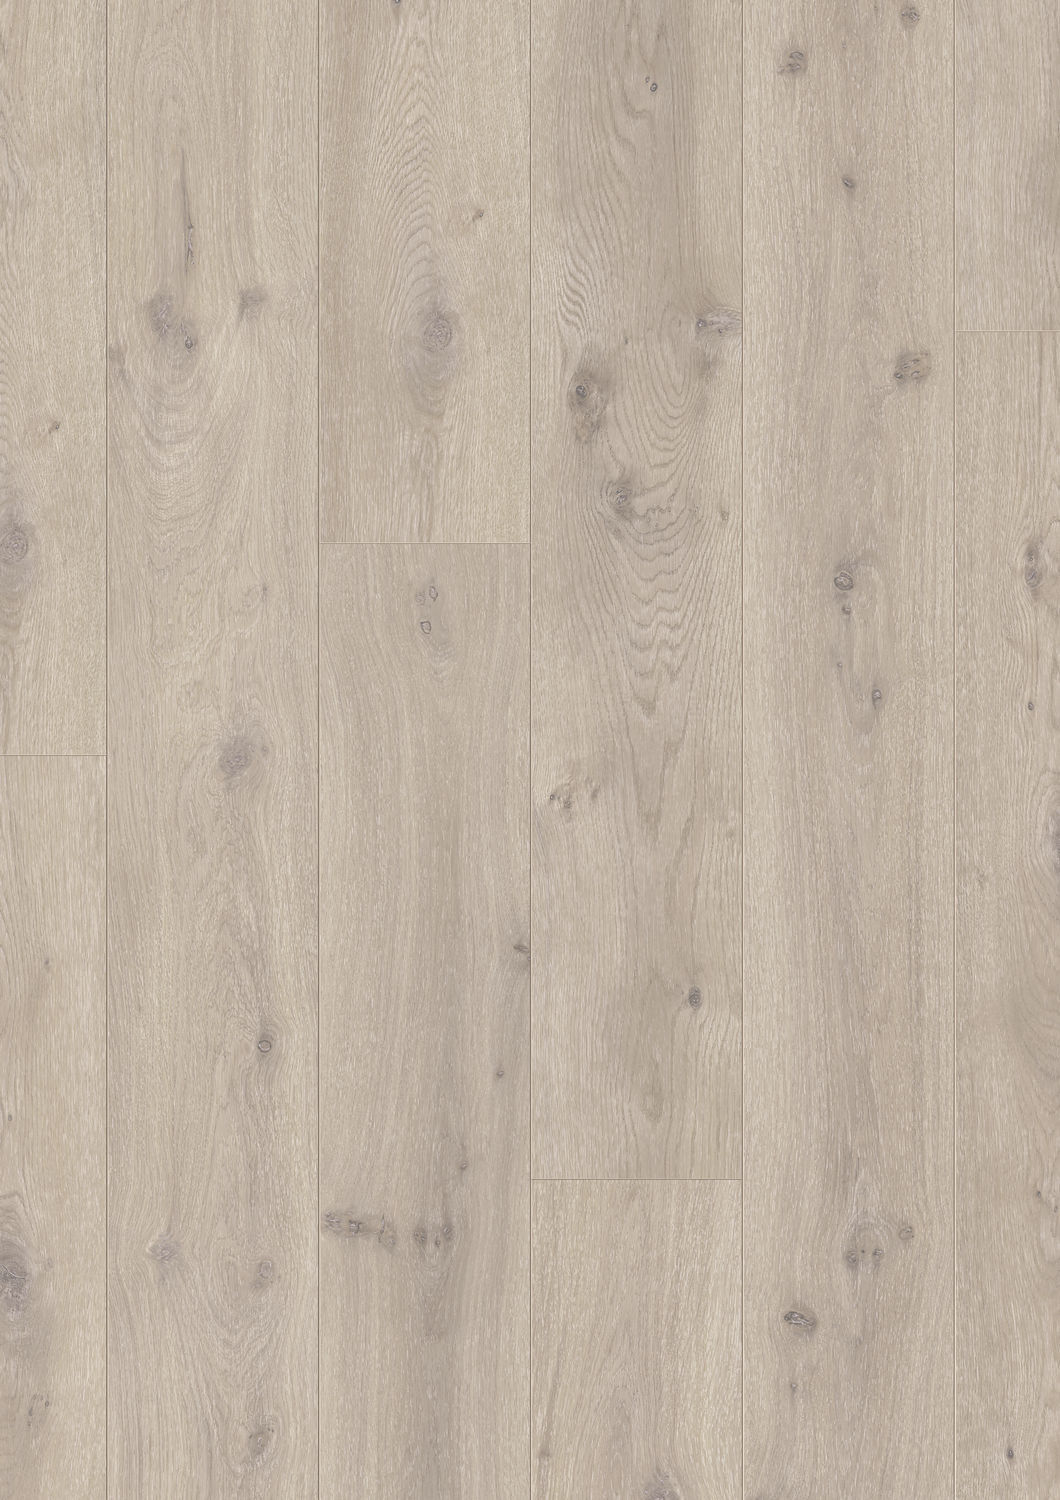 Modern Laminate Flooring colorful laminate floors contrasting and bright color for modern floor decoration Hdf Laminate Flooring Click Fit Laminate Flooring Wood Look Commercial Modern Grey Oak L0223 01753